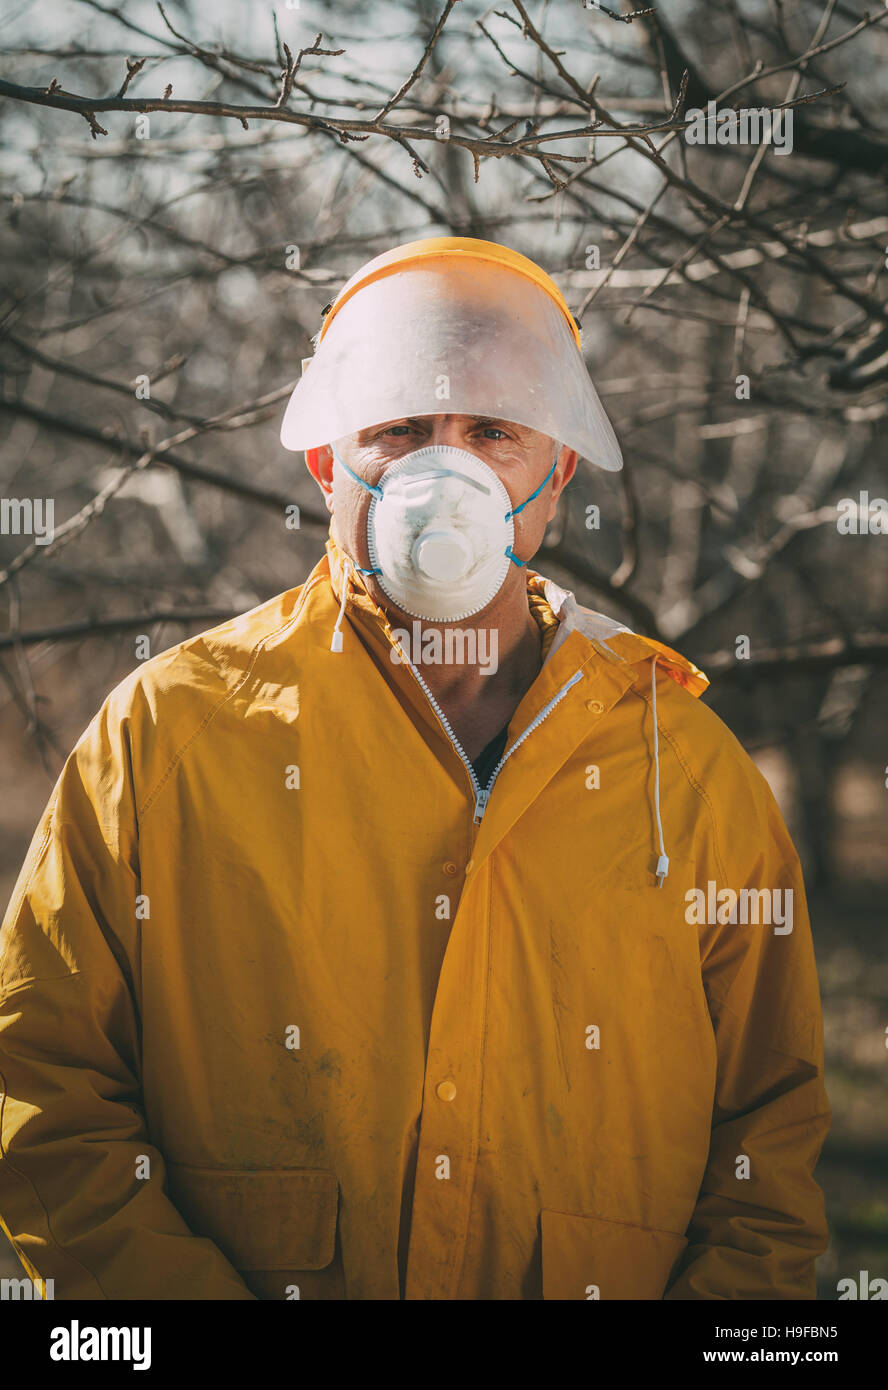 Spraying In The Orchard - Stock Image